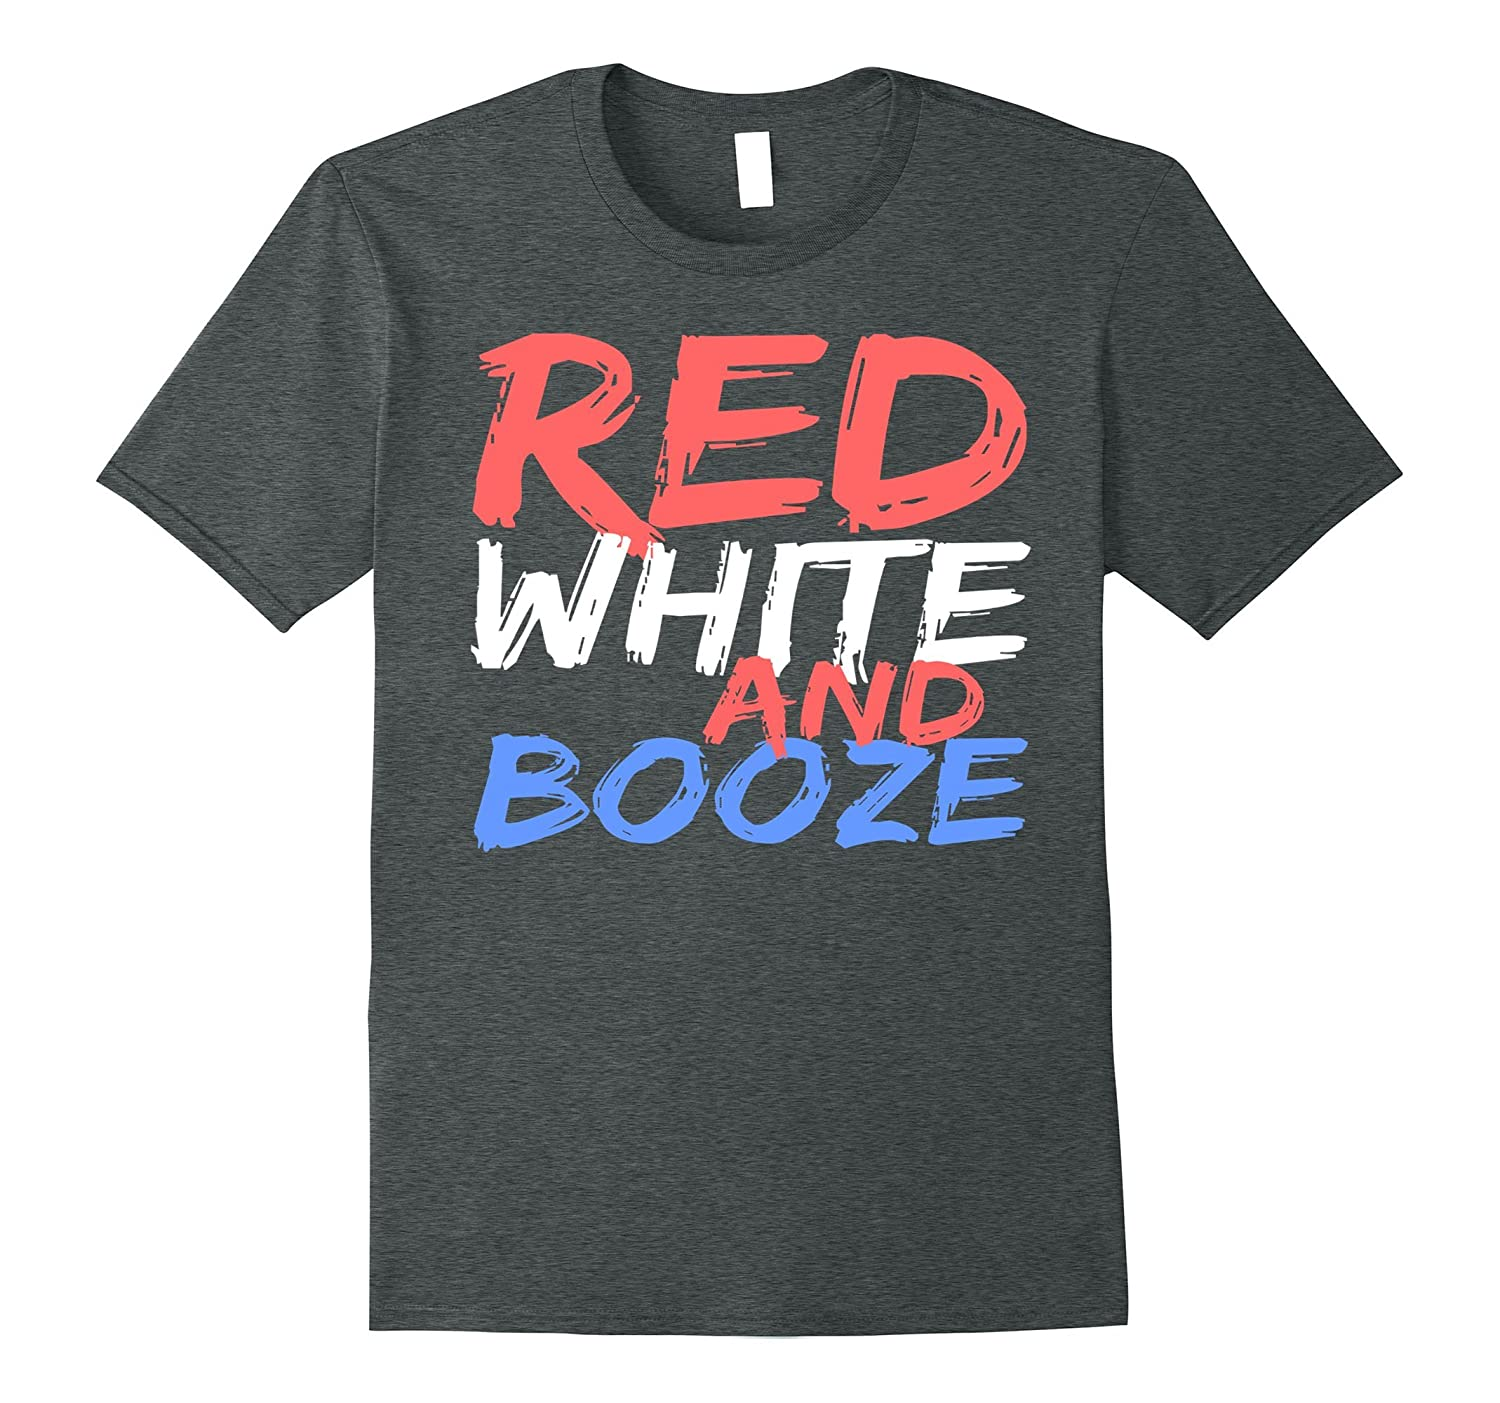 37893aad Red White And Booze T-Shirt Drinking 4th of July Gift-PL – Polozatee